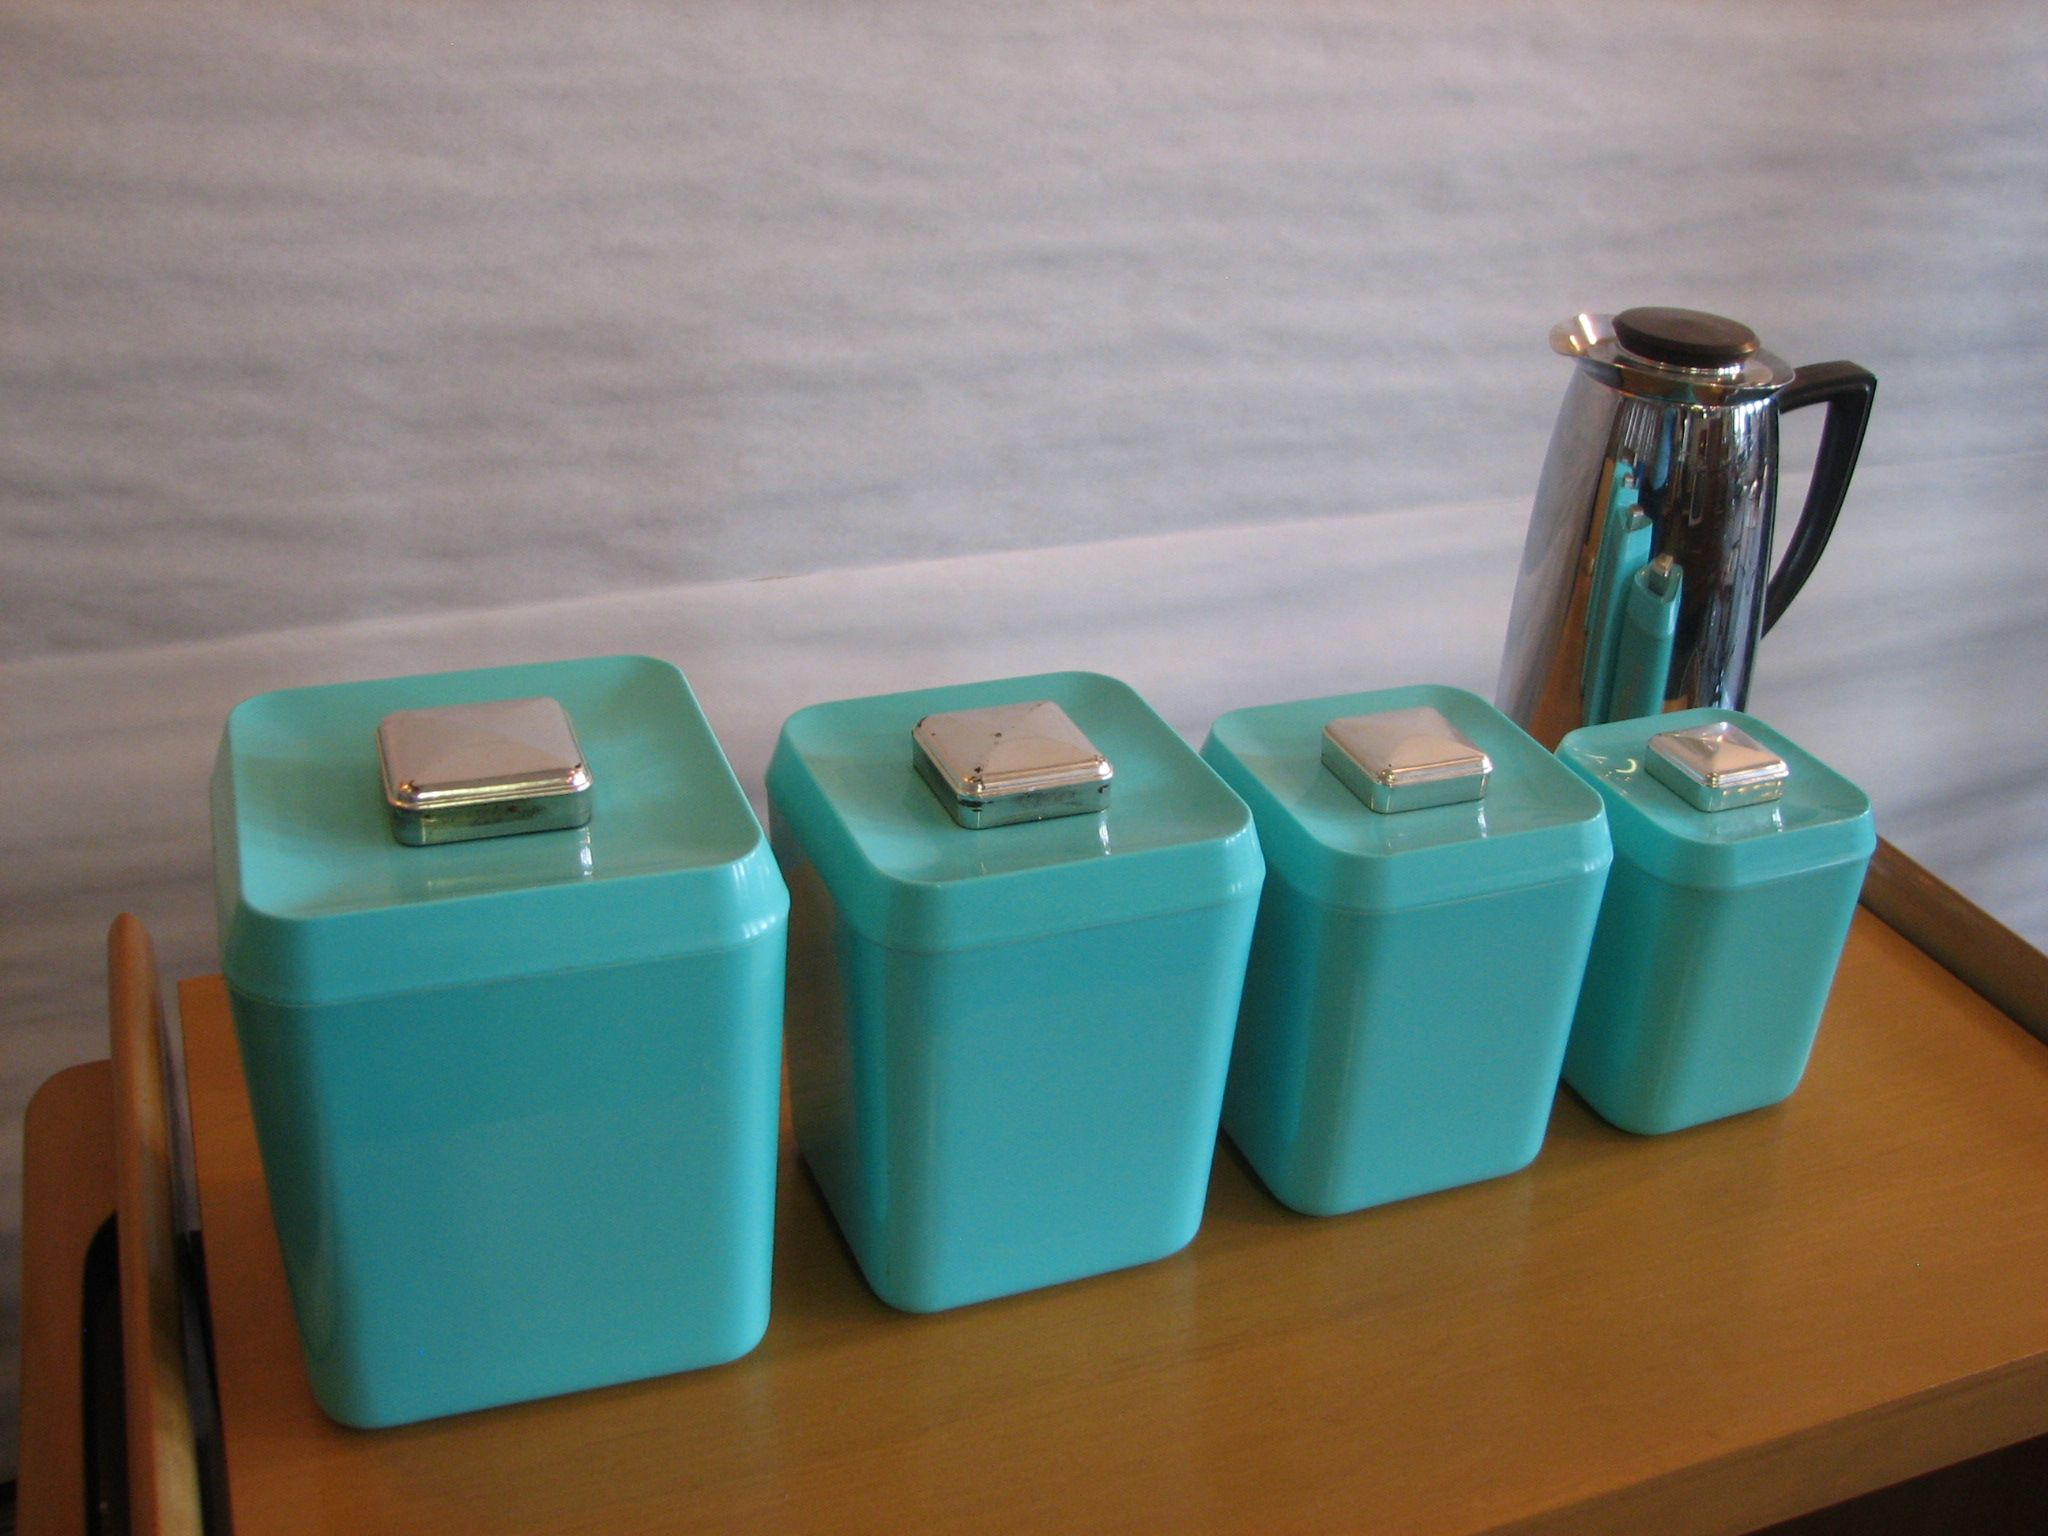 Beau Set Of Turquoise Canisters